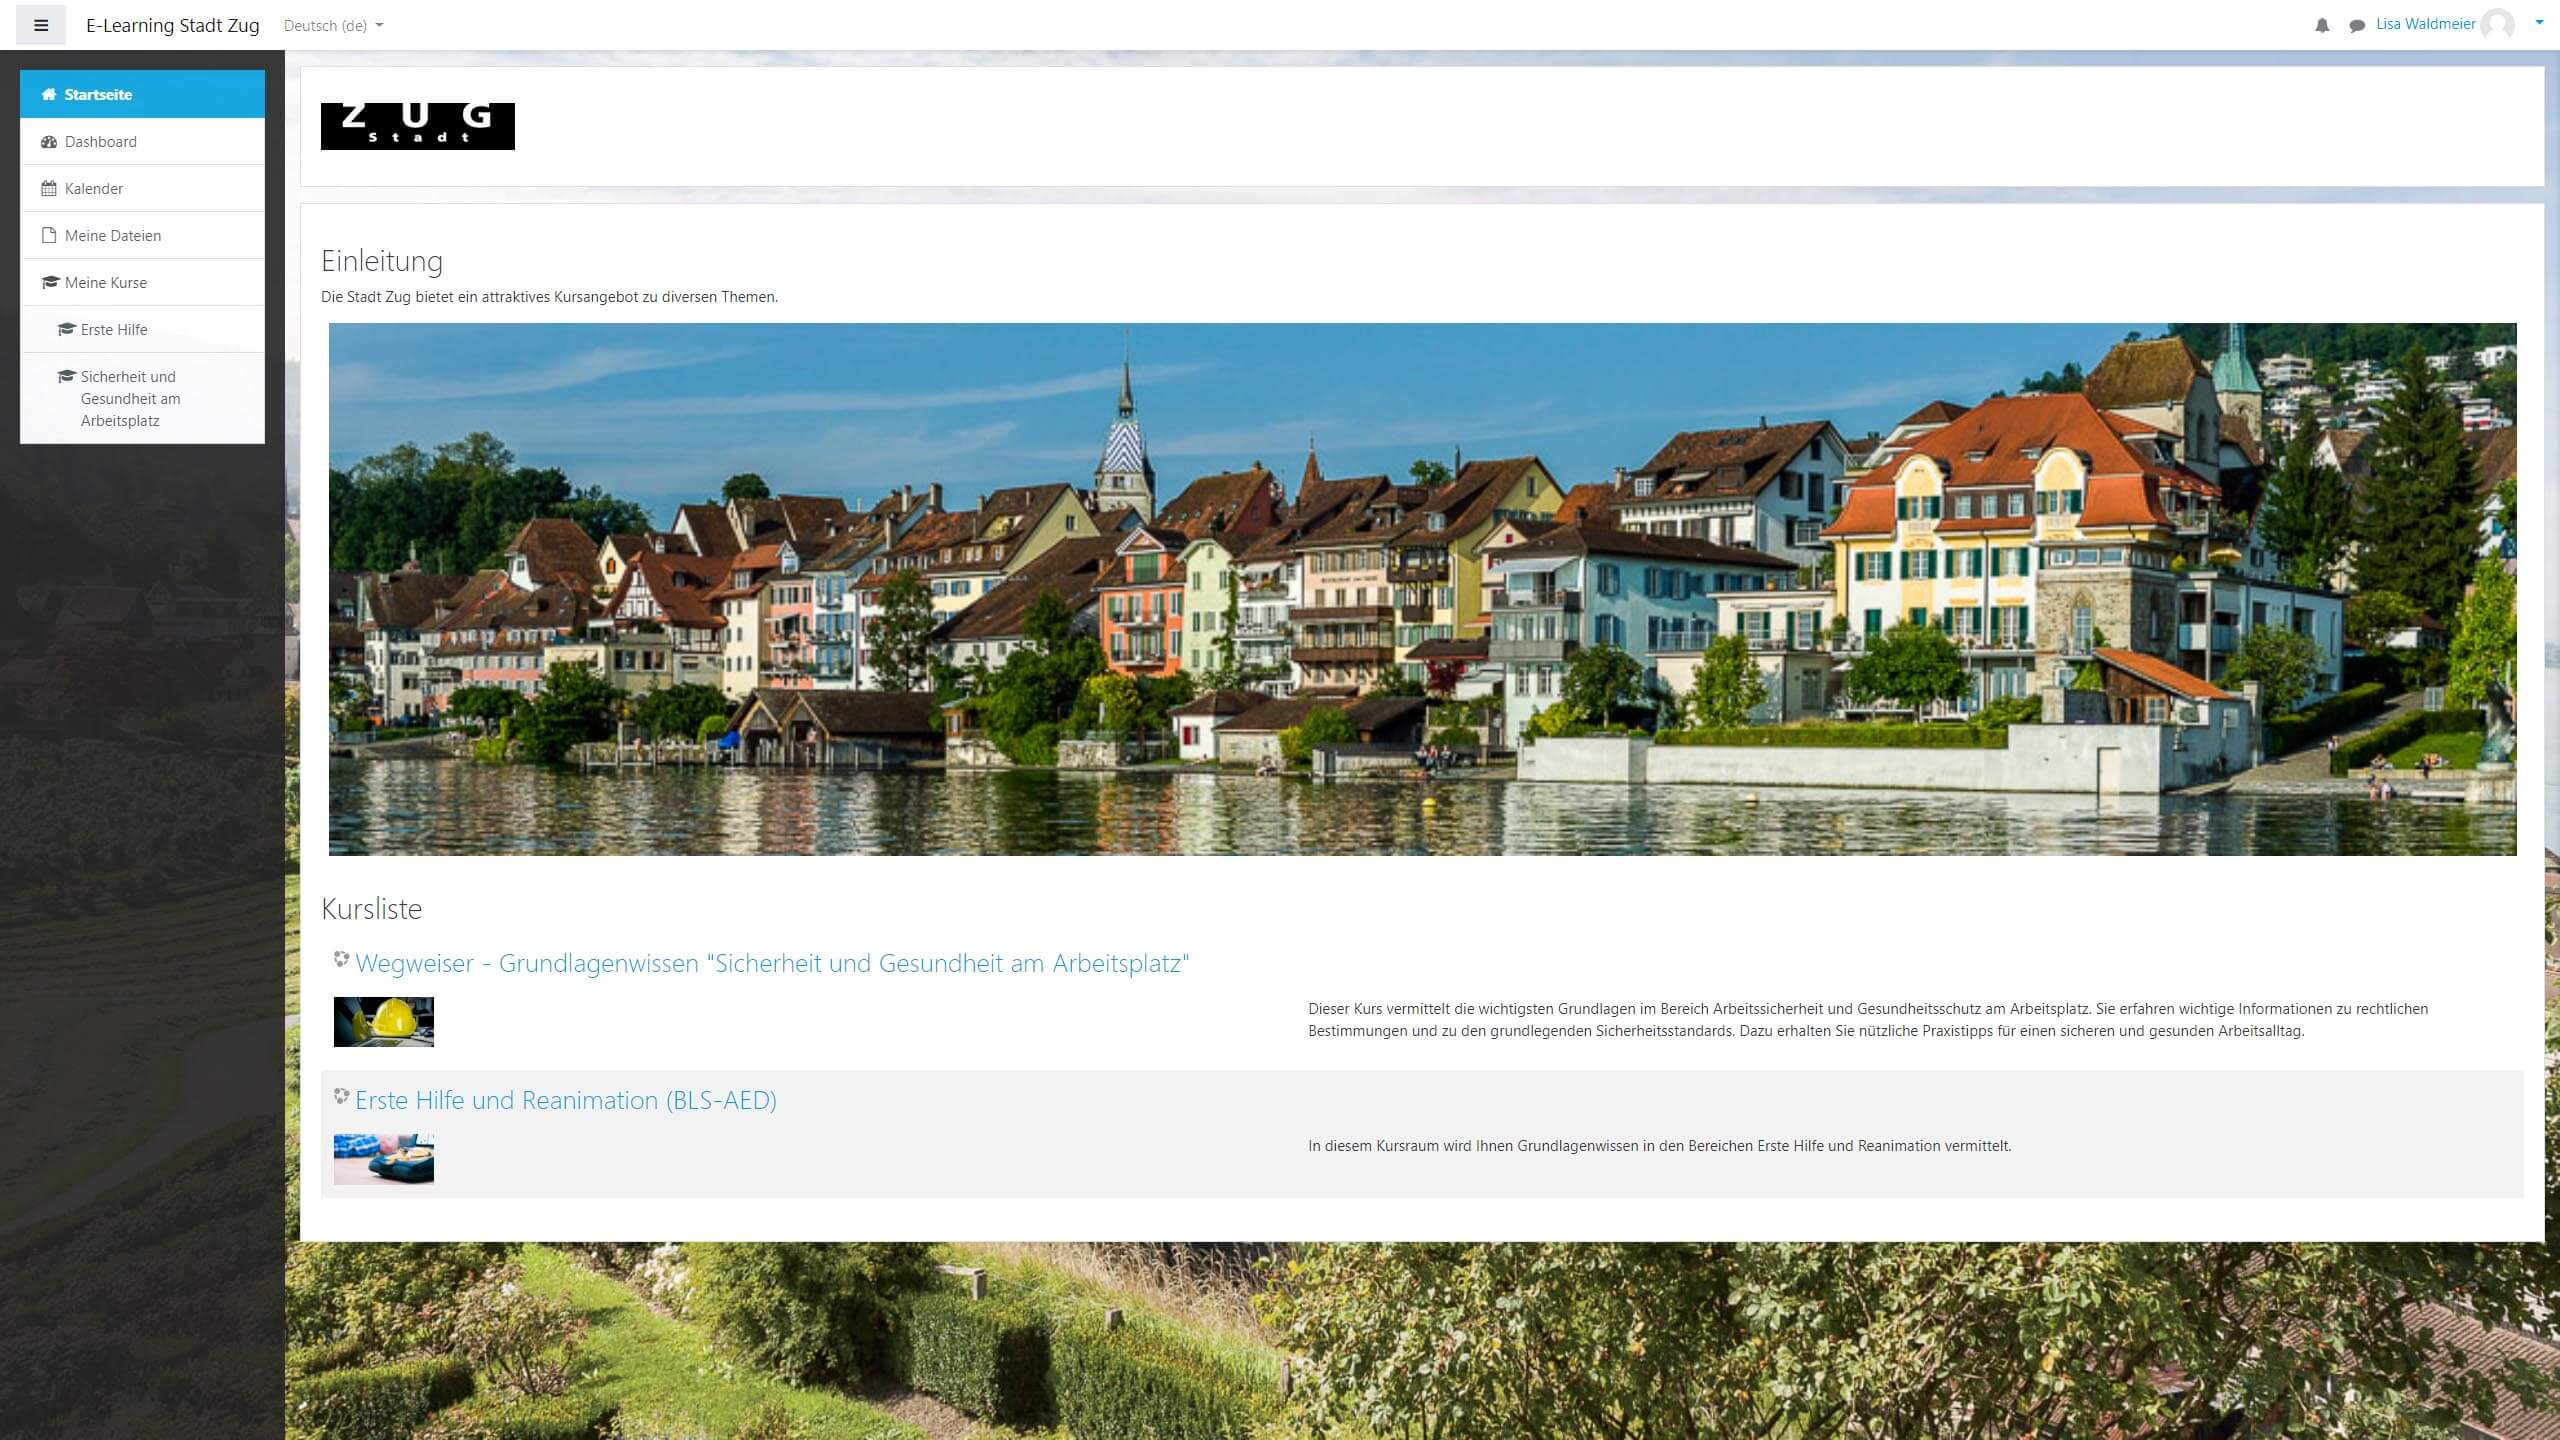 E-Learning Stadt Zug